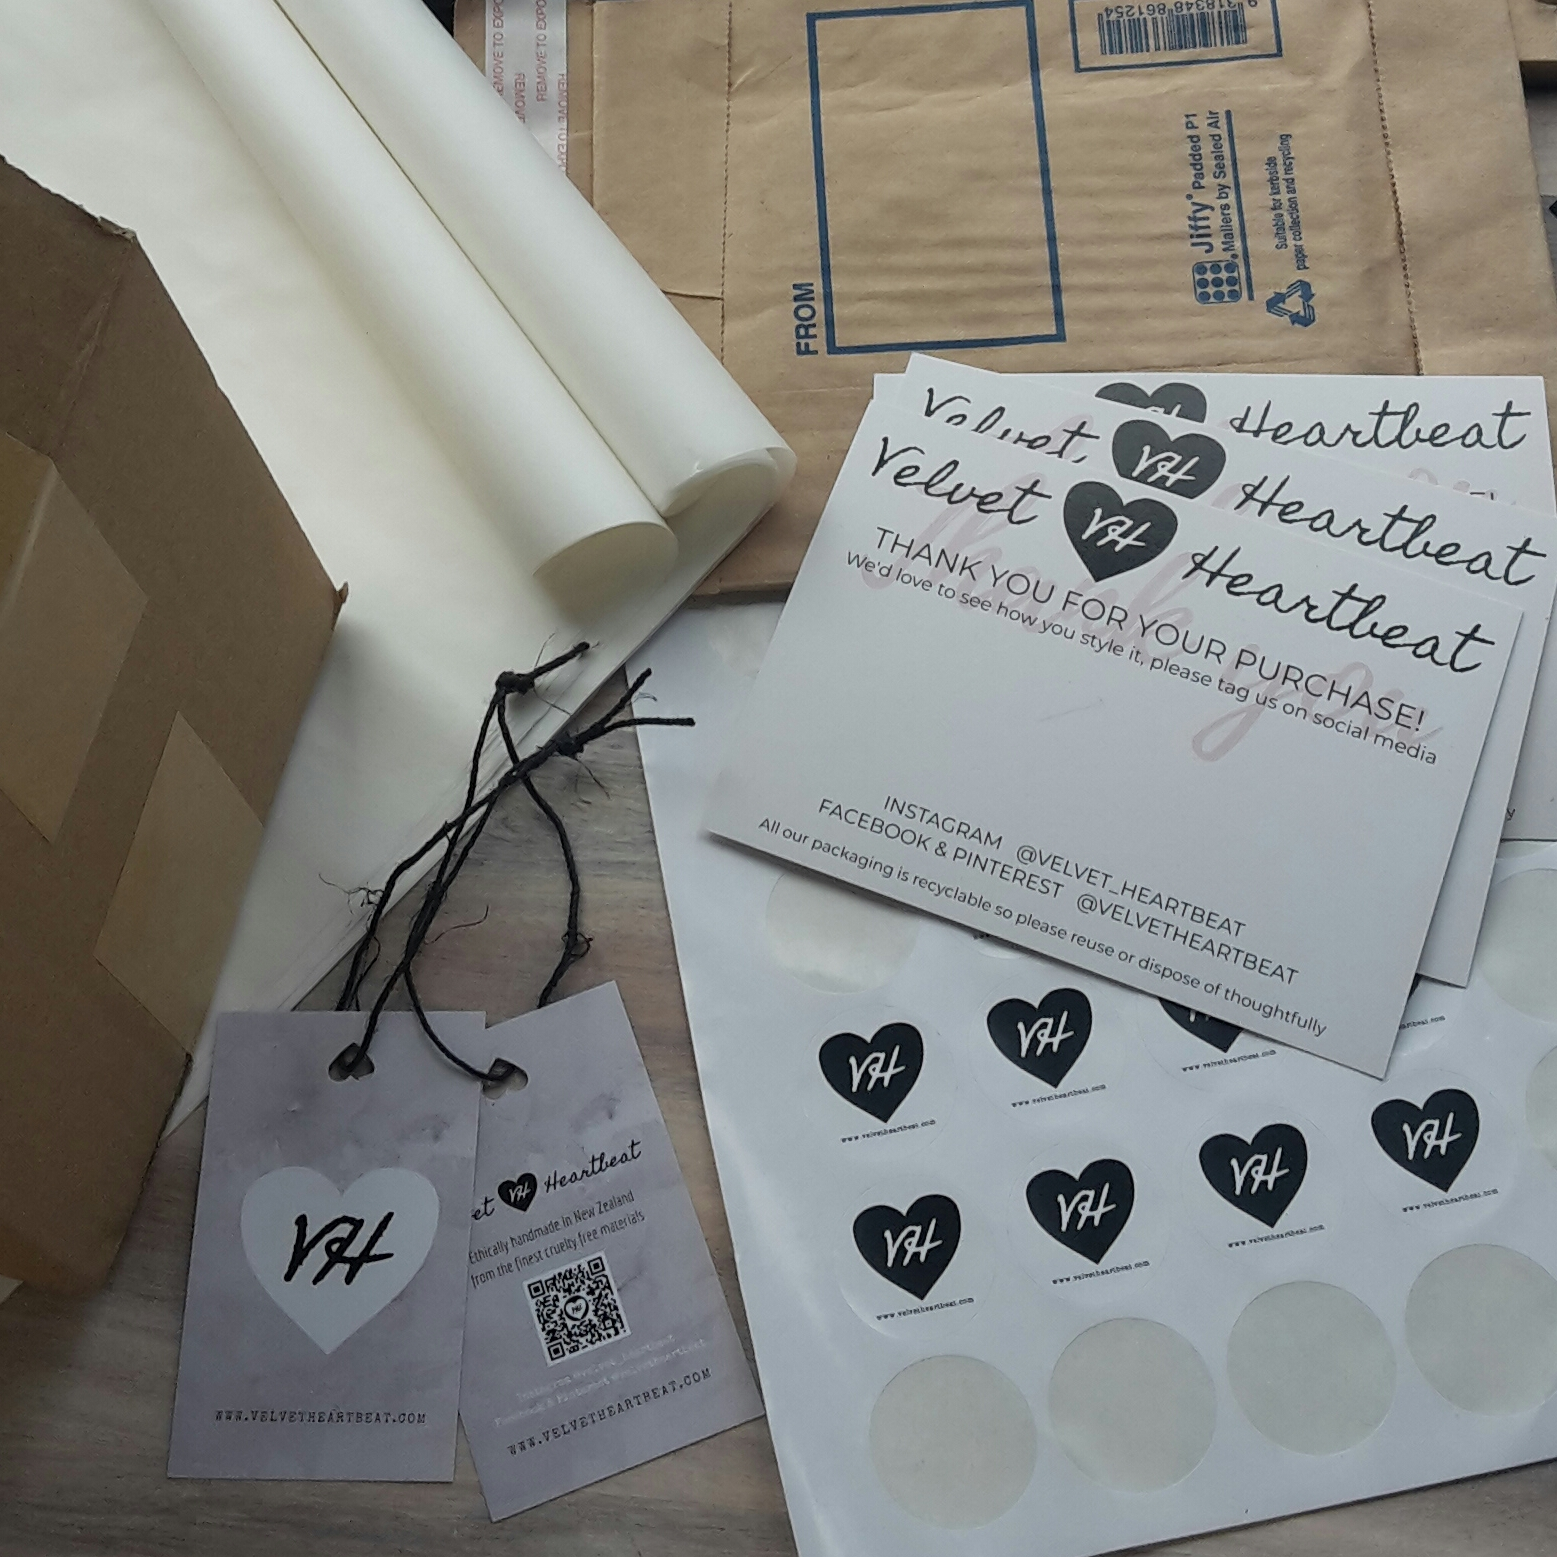 Velvet Heartbeat packaging can be recycled